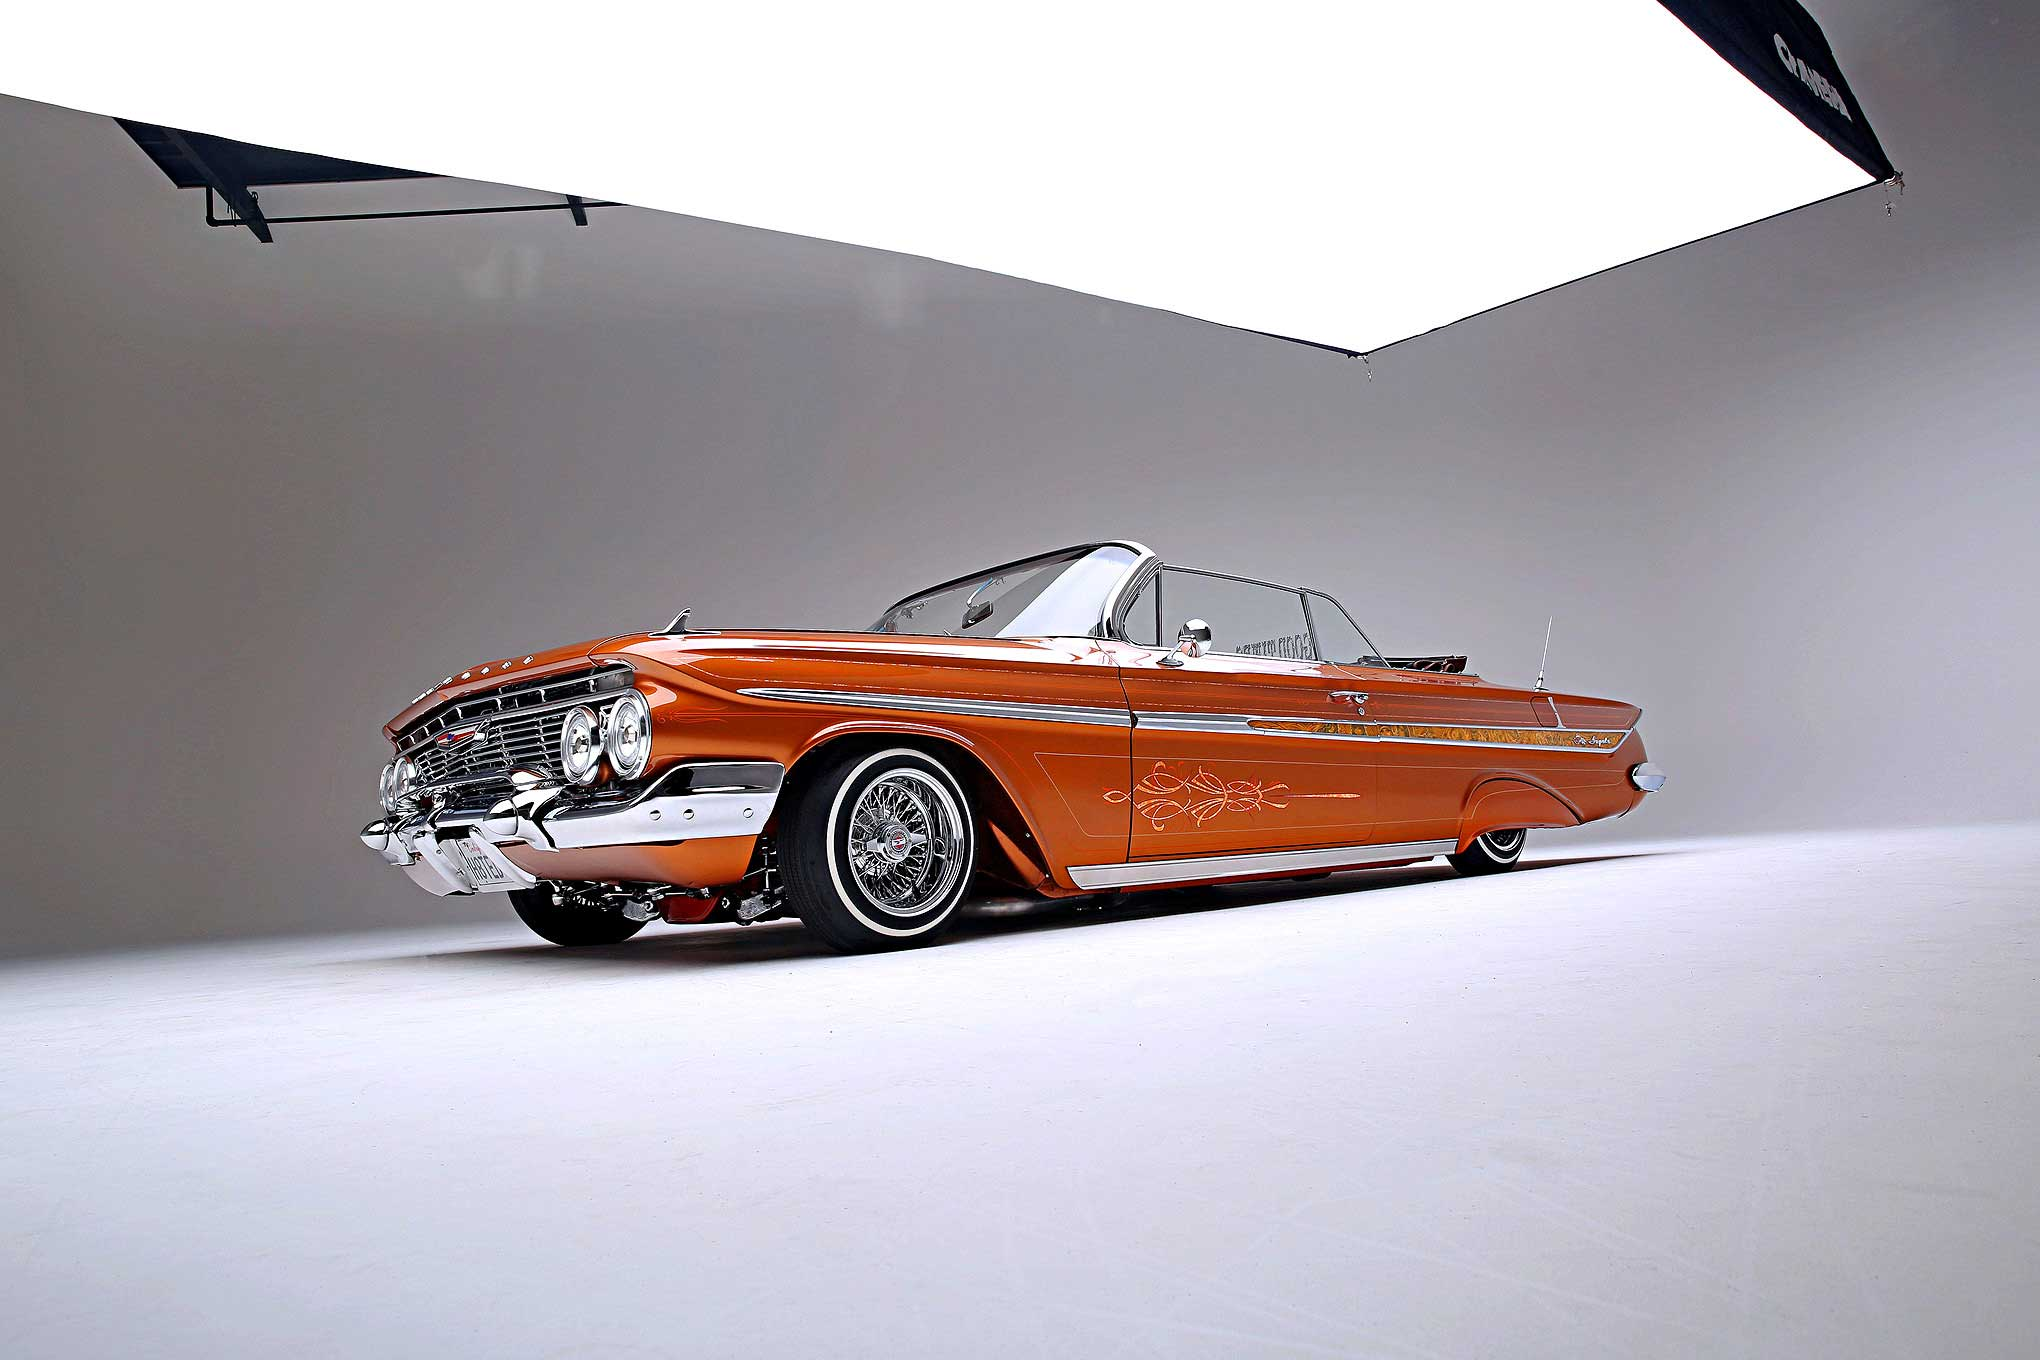 61 Impala Convertible Lowrider 1961 Chevy